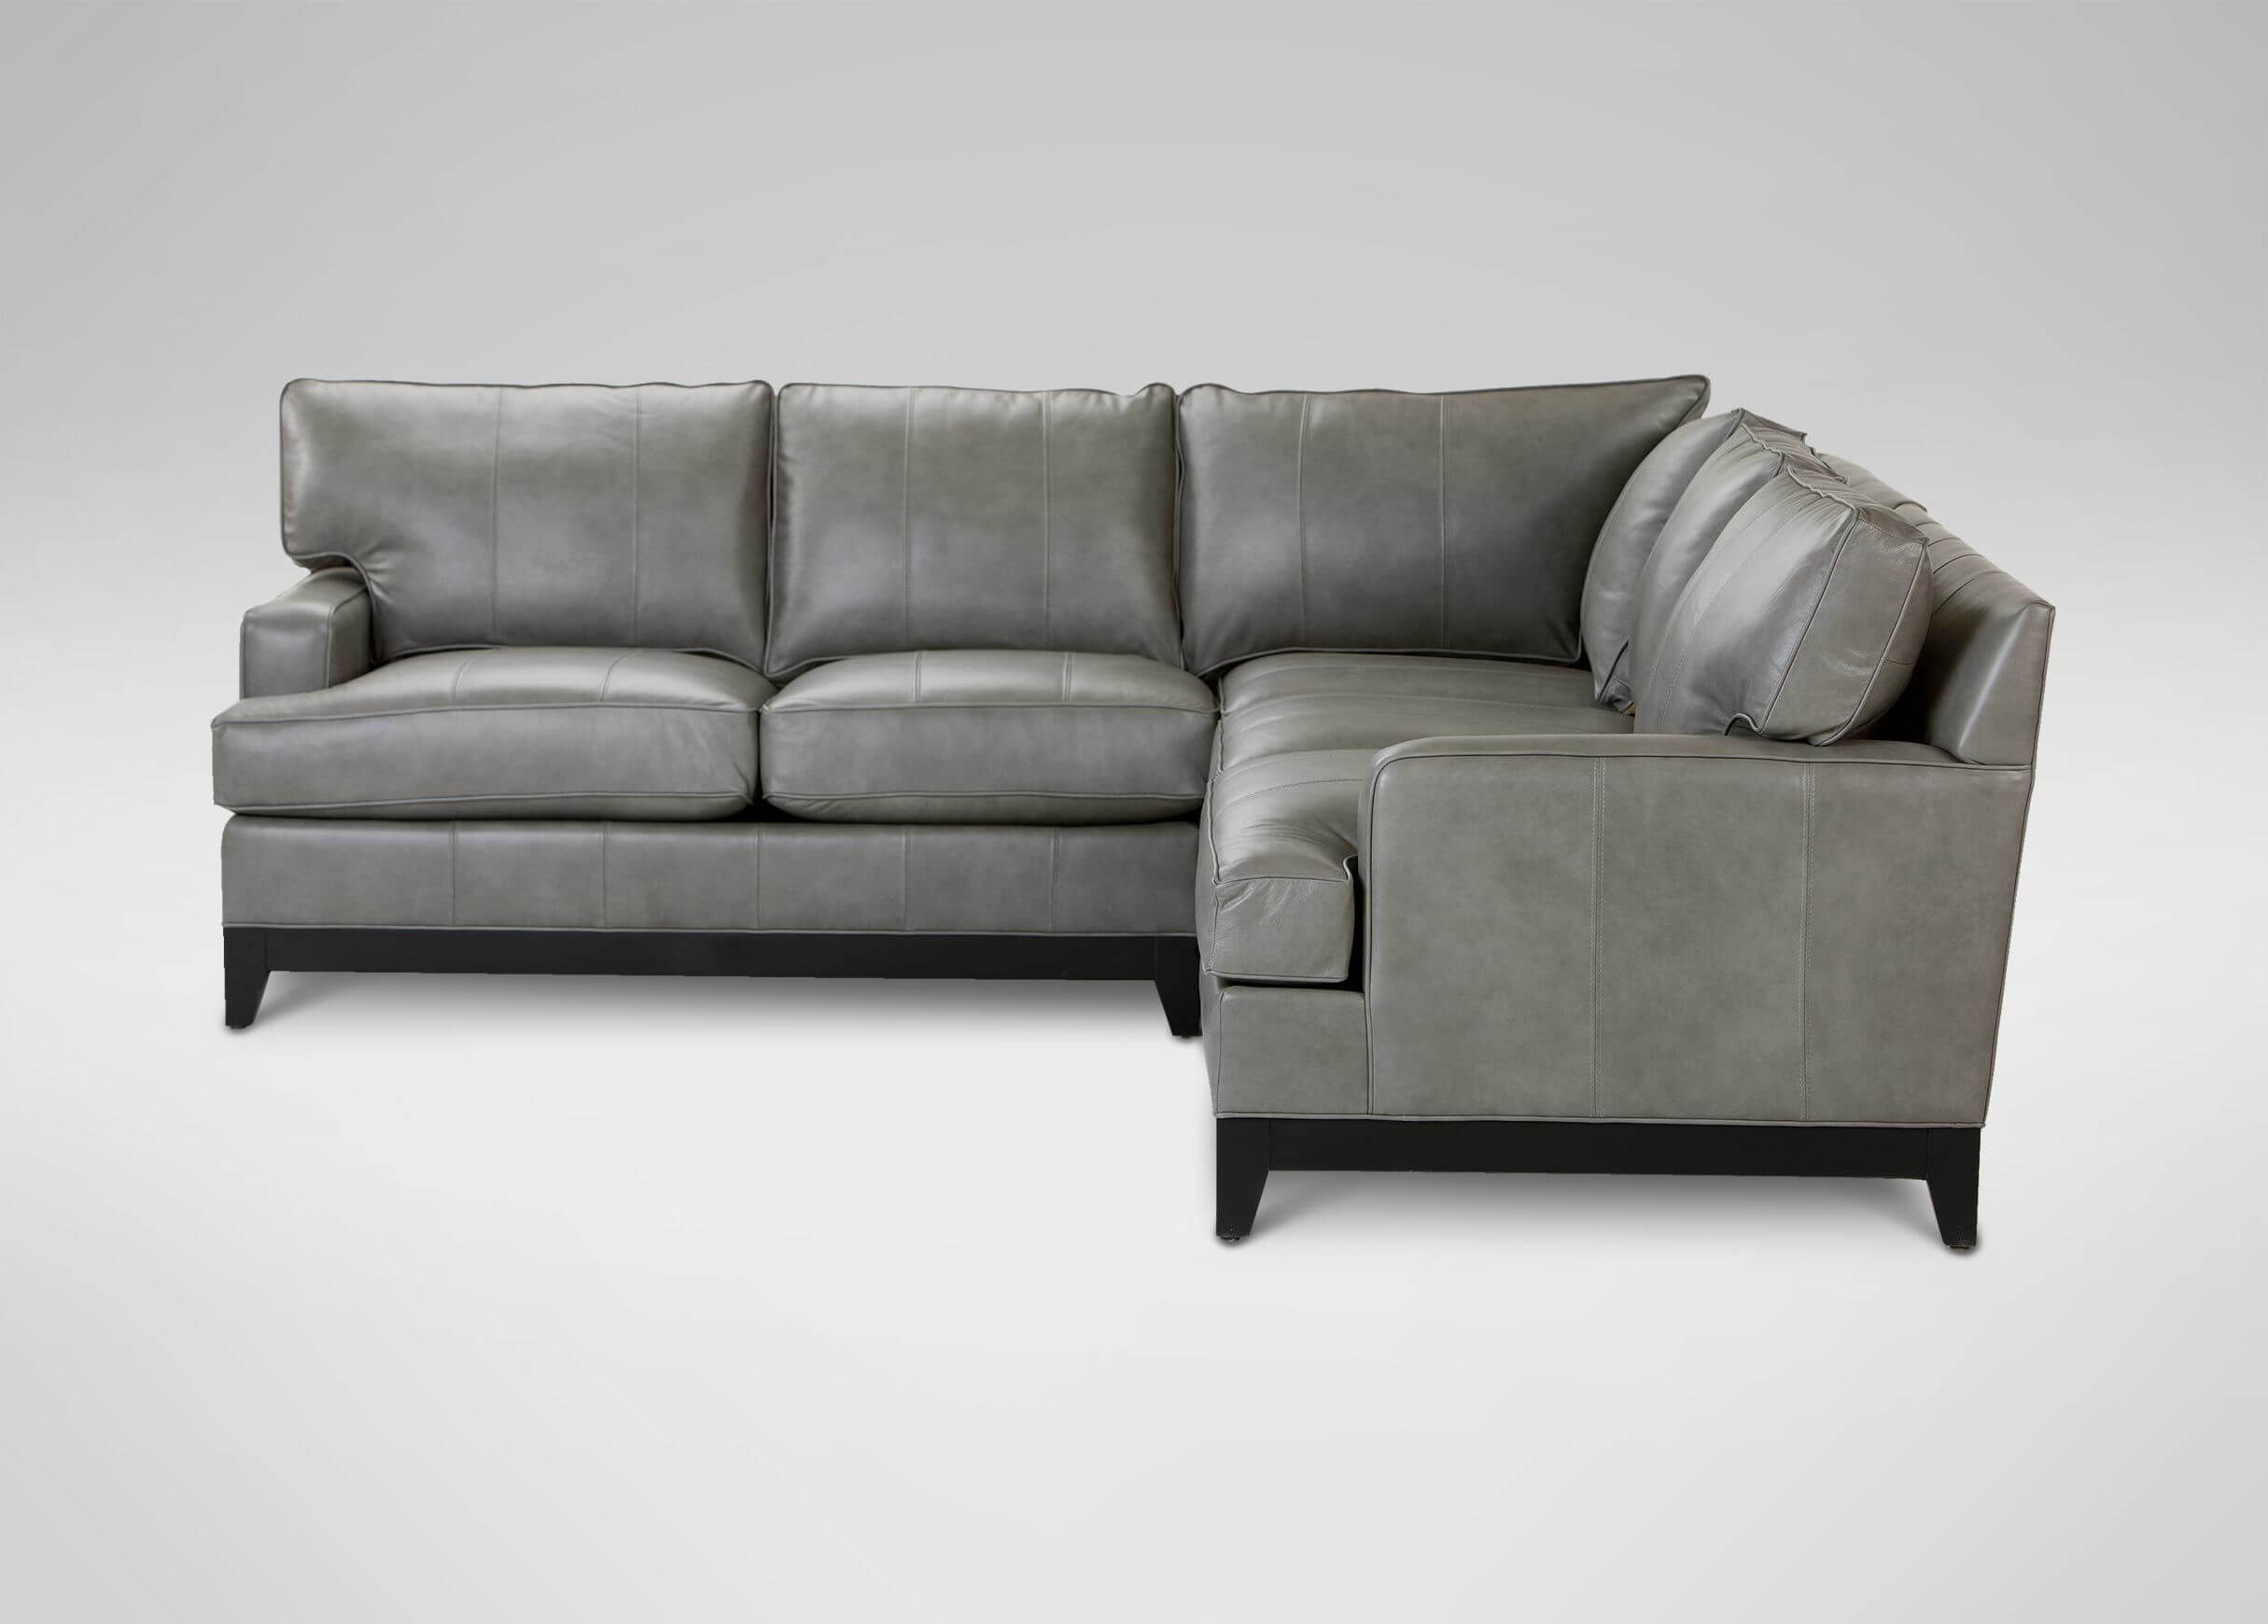 excellent traditional sectional sofas design-Modern Traditional Sectional sofas Image